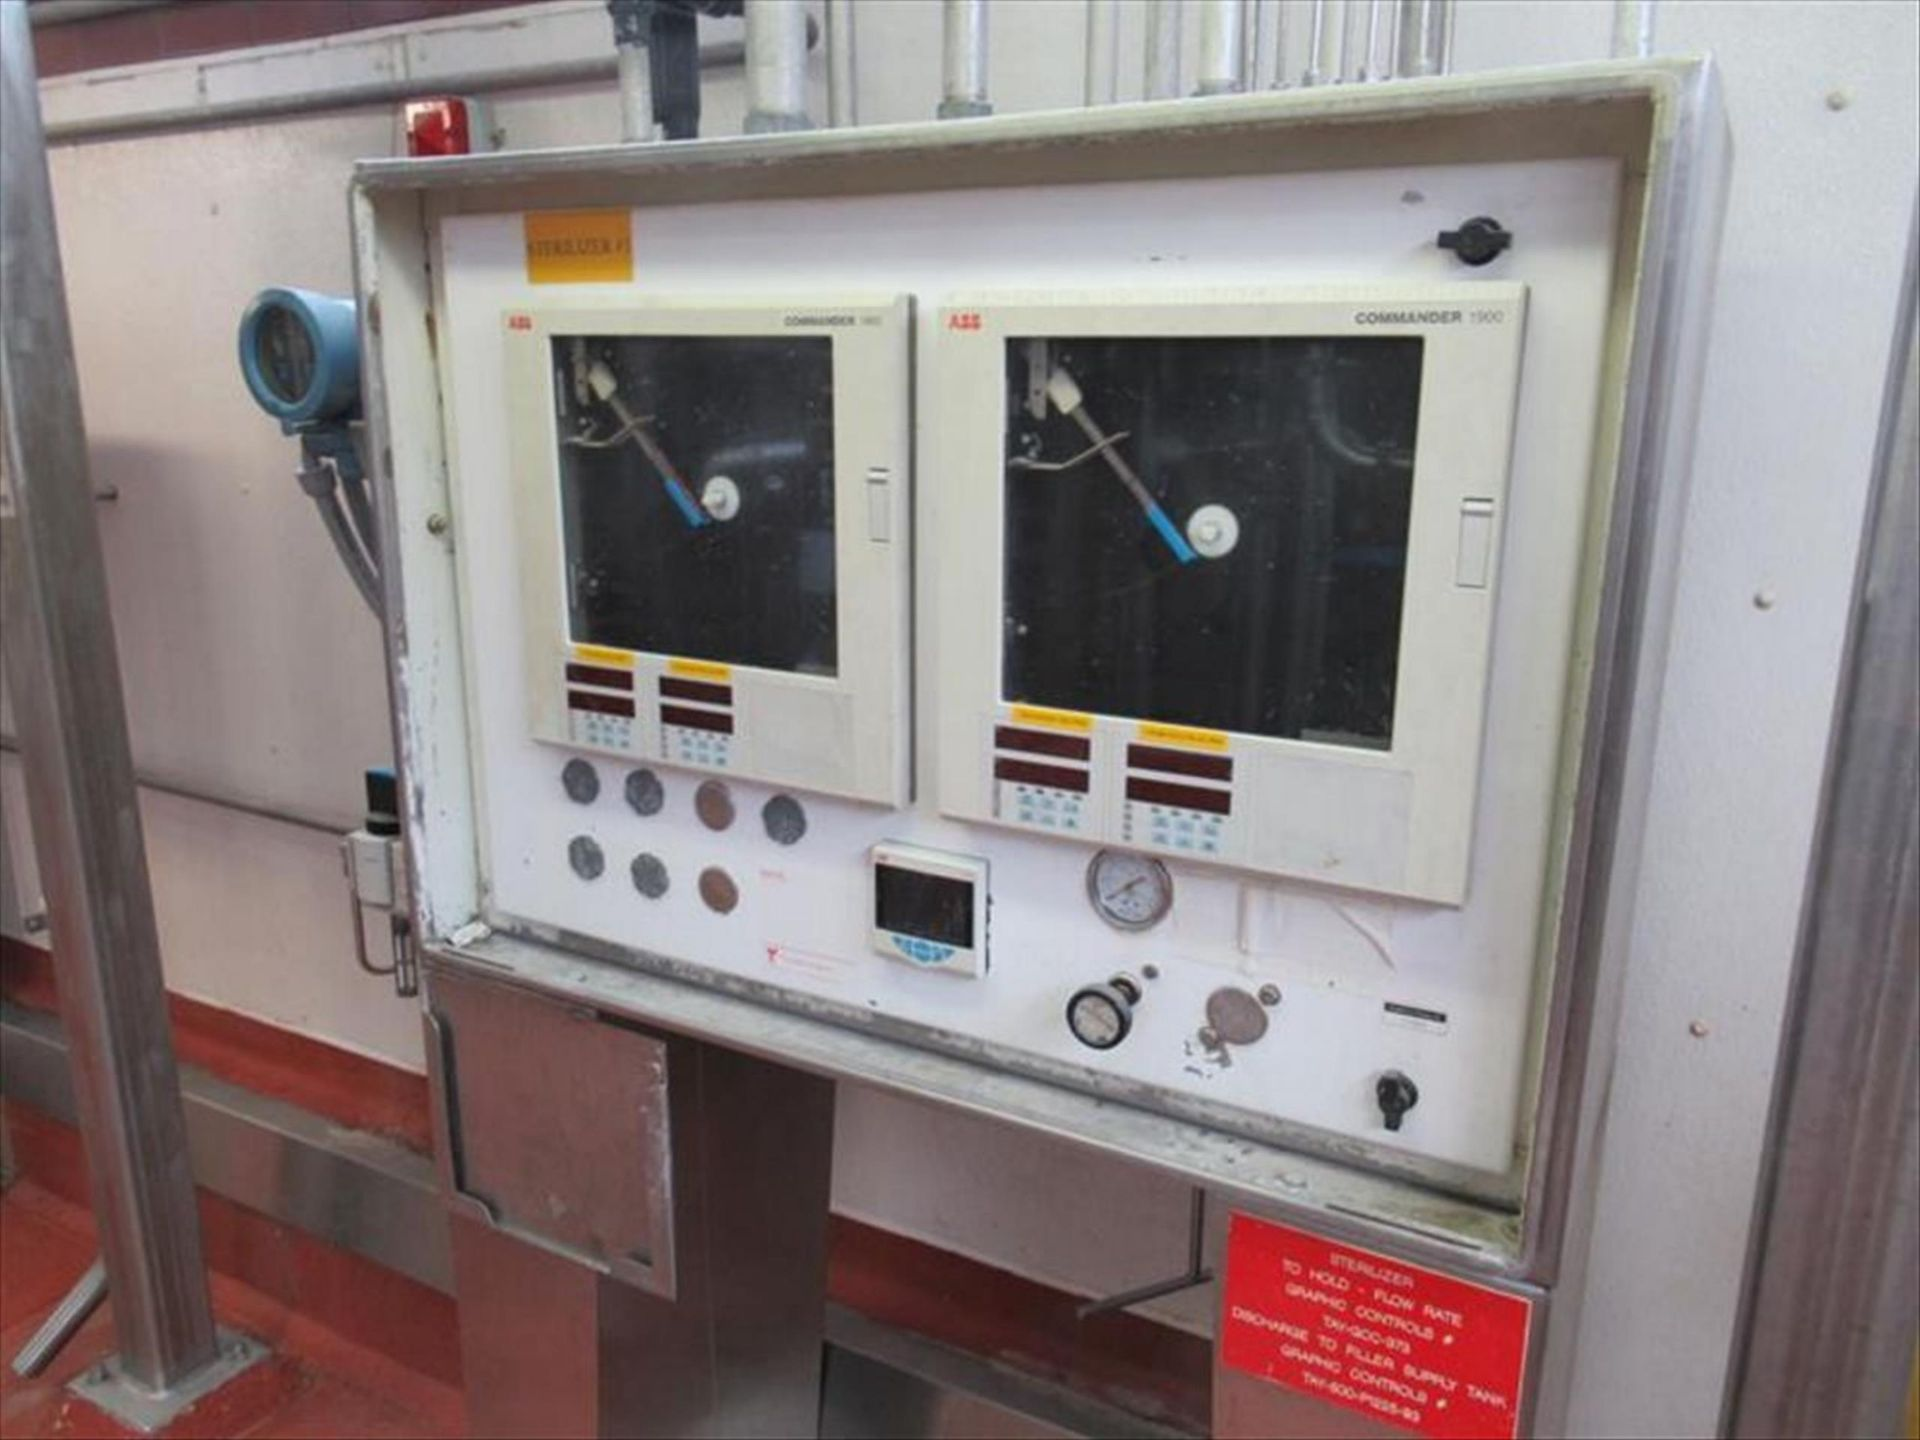 Lot 360 - Control panel for #1 with (2) ABB Commander 1900 chart recorders, plus CM30 process controller,